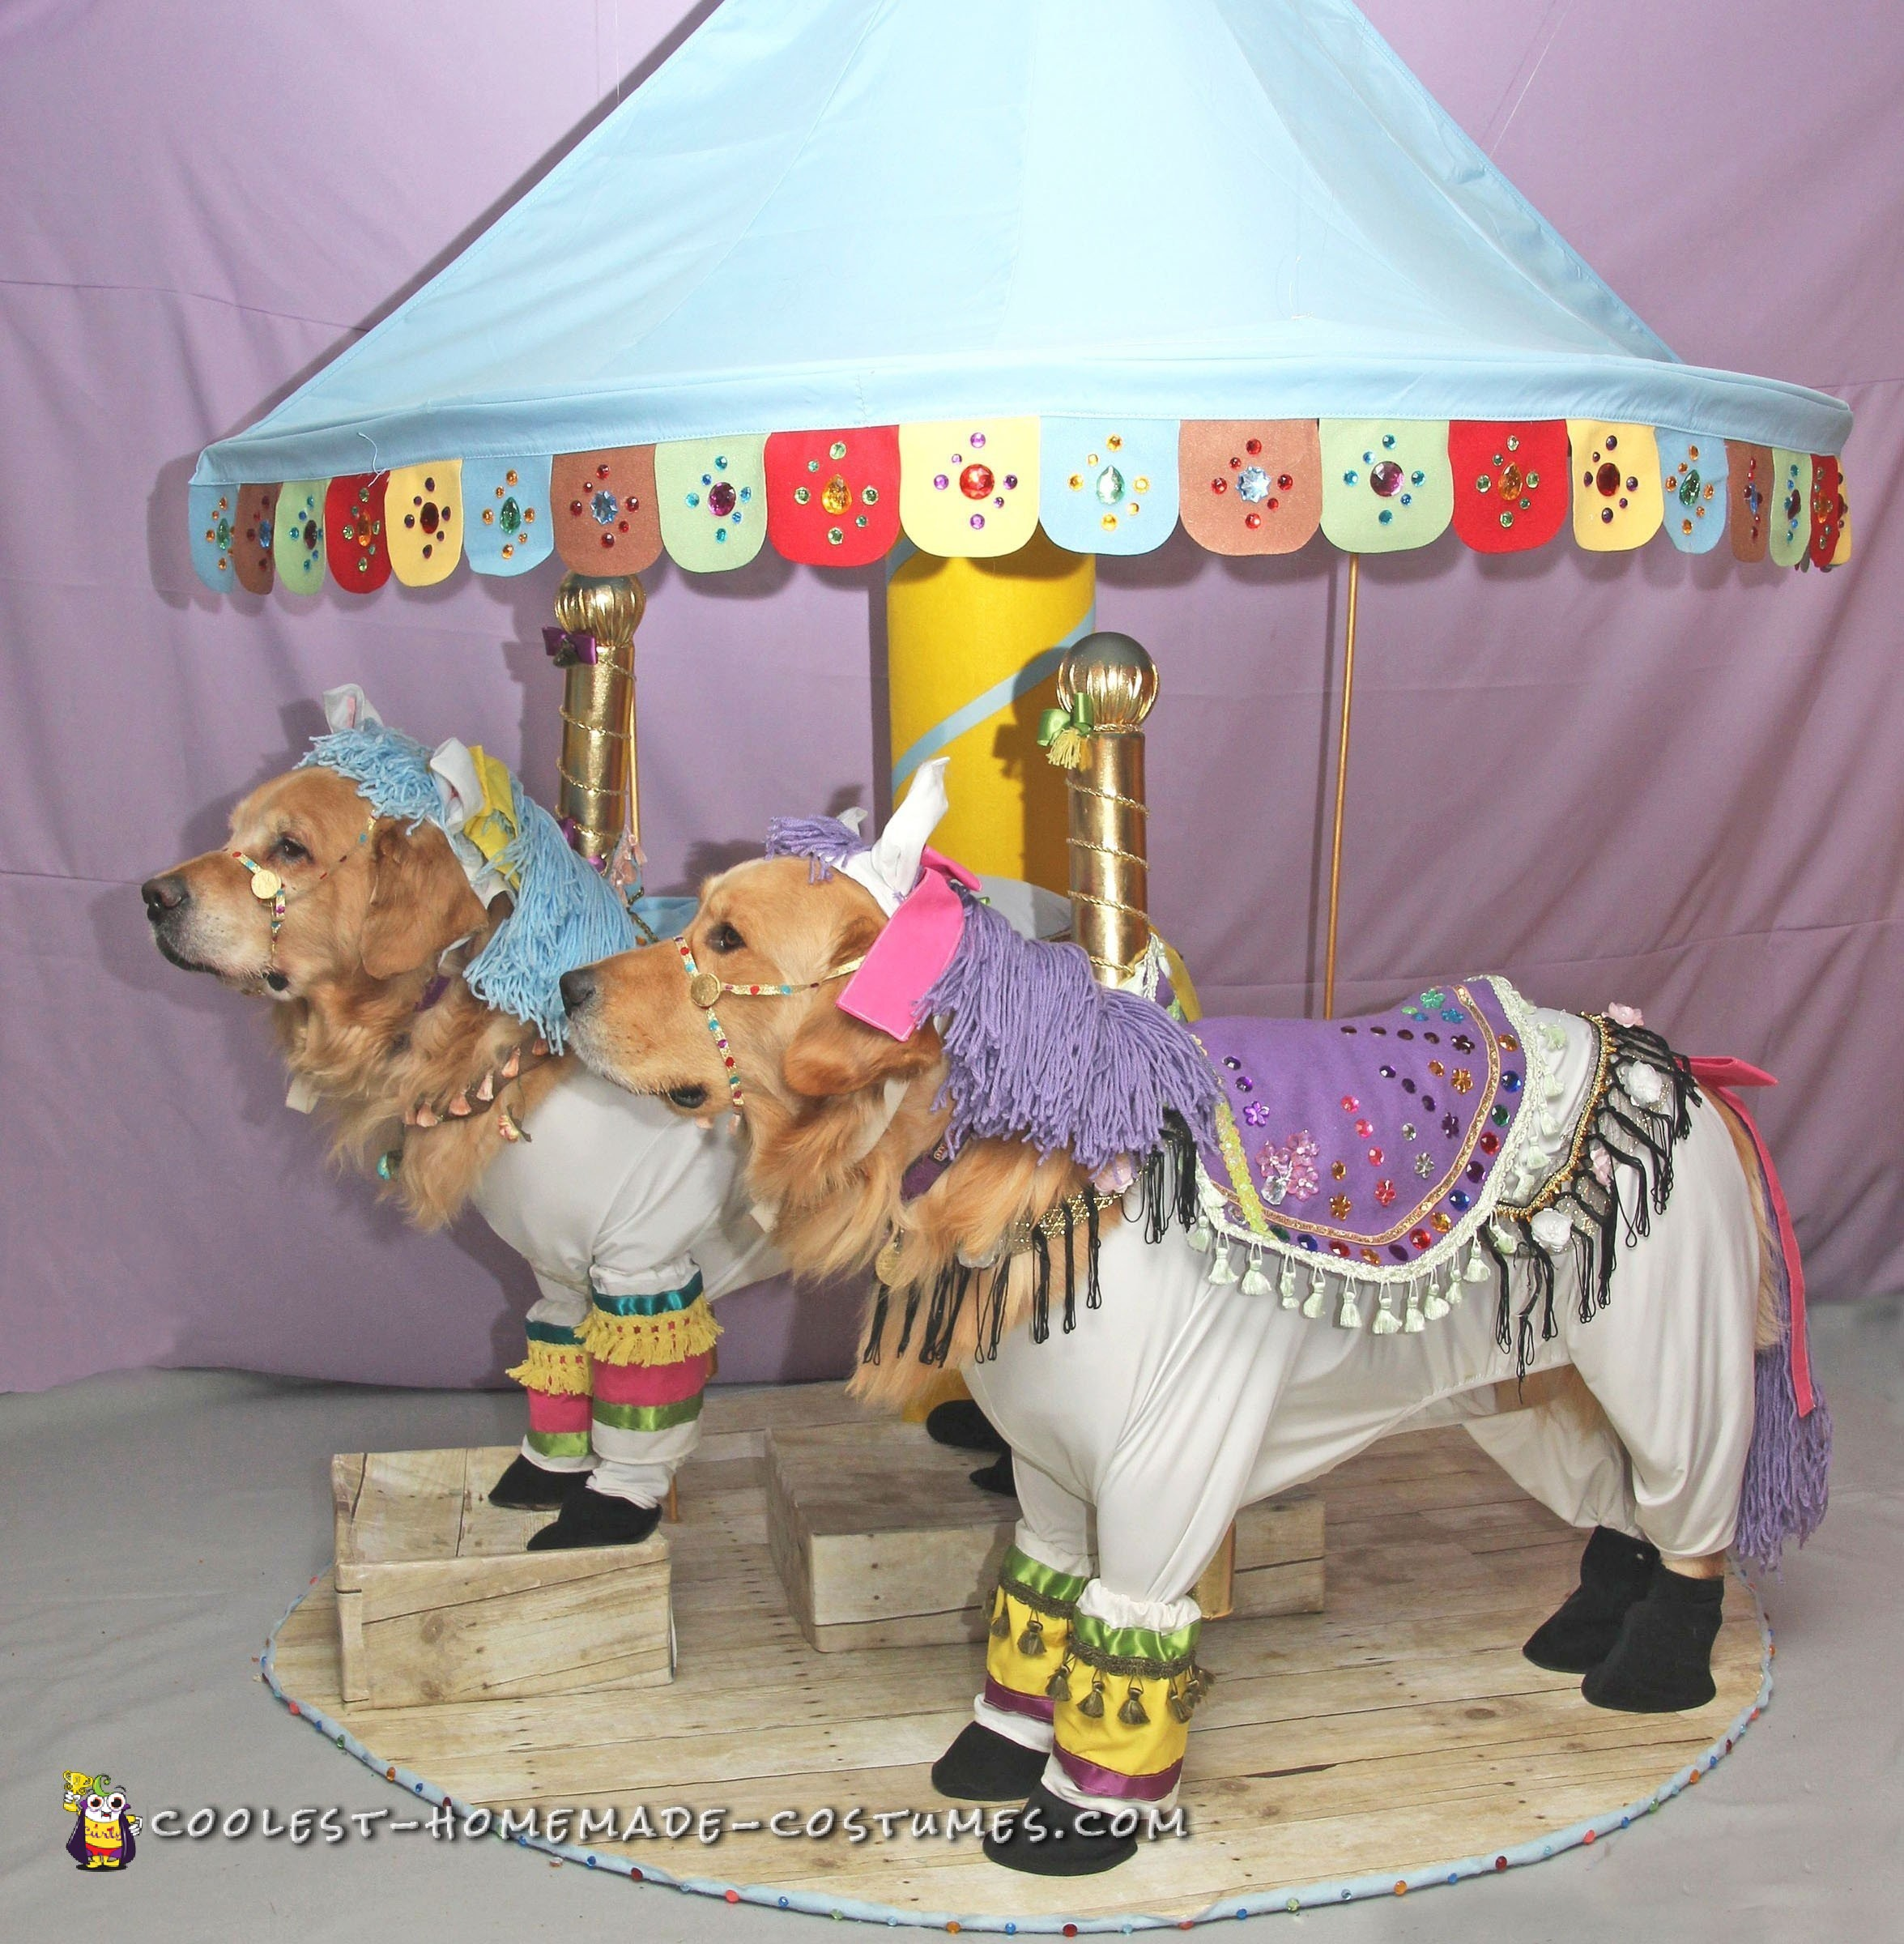 Fanciest Carousel Horse Costumes for Dogs